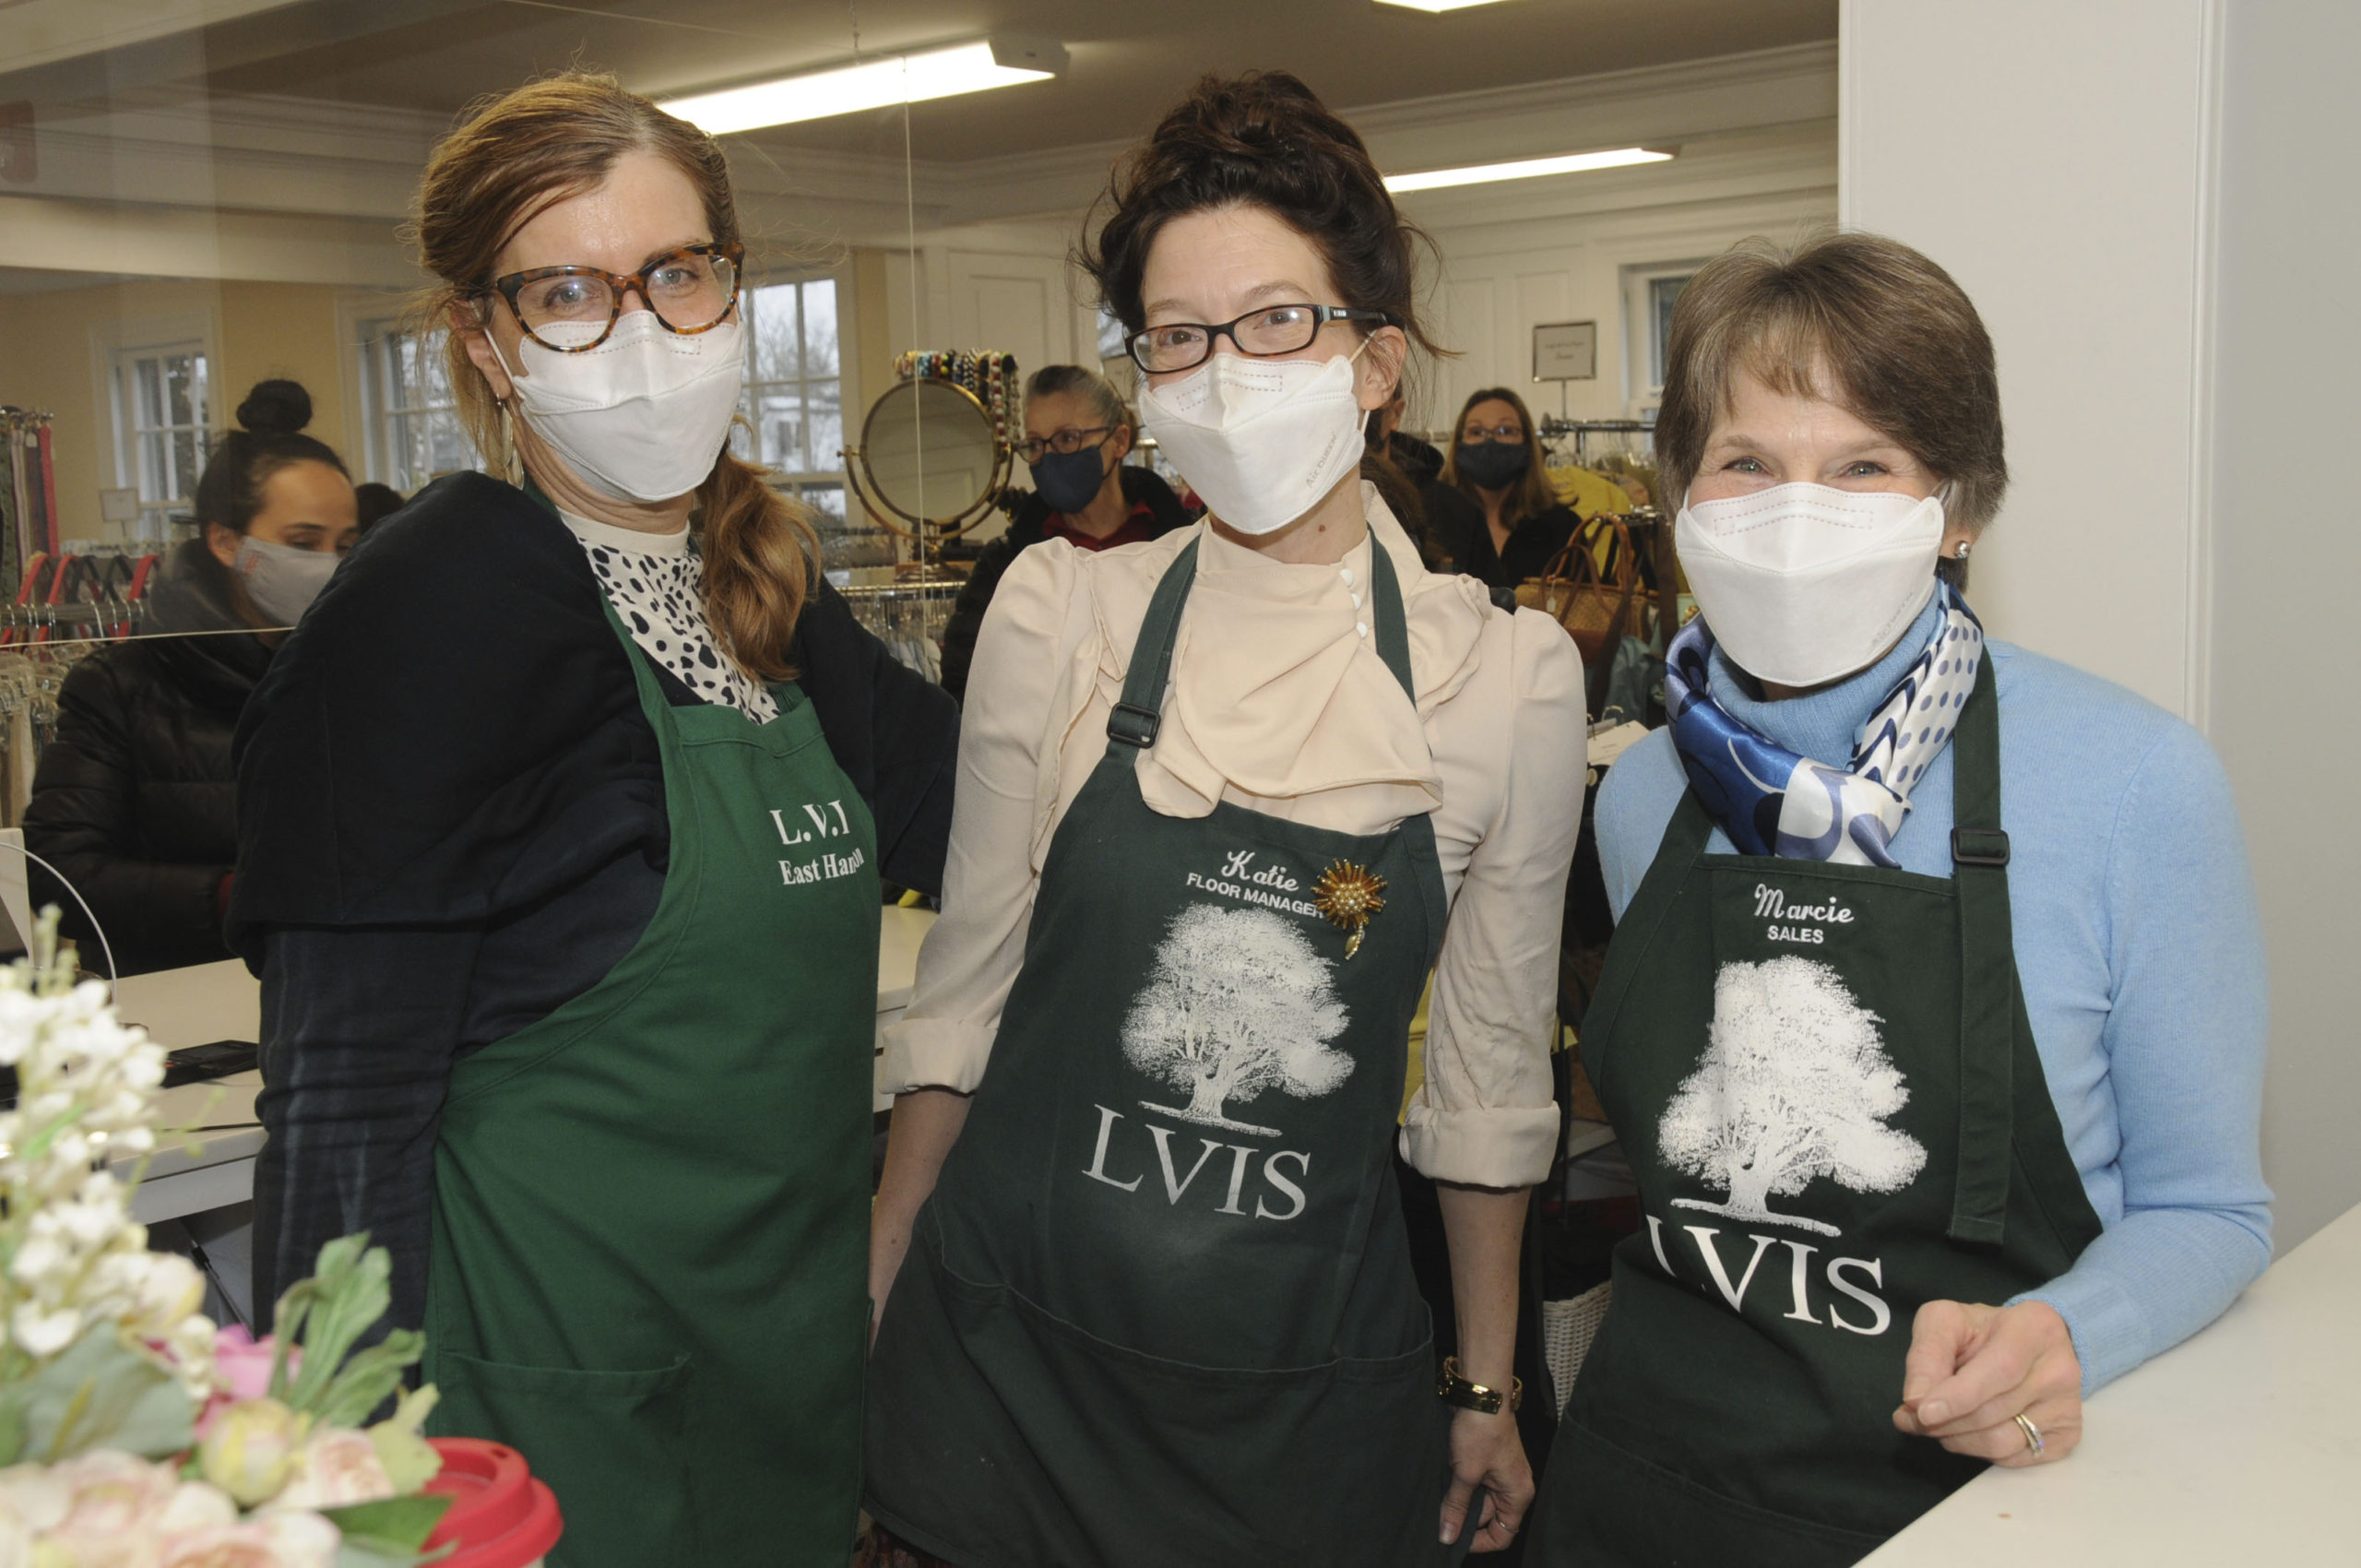 Despite the challenges of the pandemic era, the Ladies' Village Improvement Society of East Hampton held their annual Spring Opening of The Shops At LVIS on Saturday. Left to right, Annie Browngardt, Katie Kulp and Marcie Reed.    RICHARD LEWIN